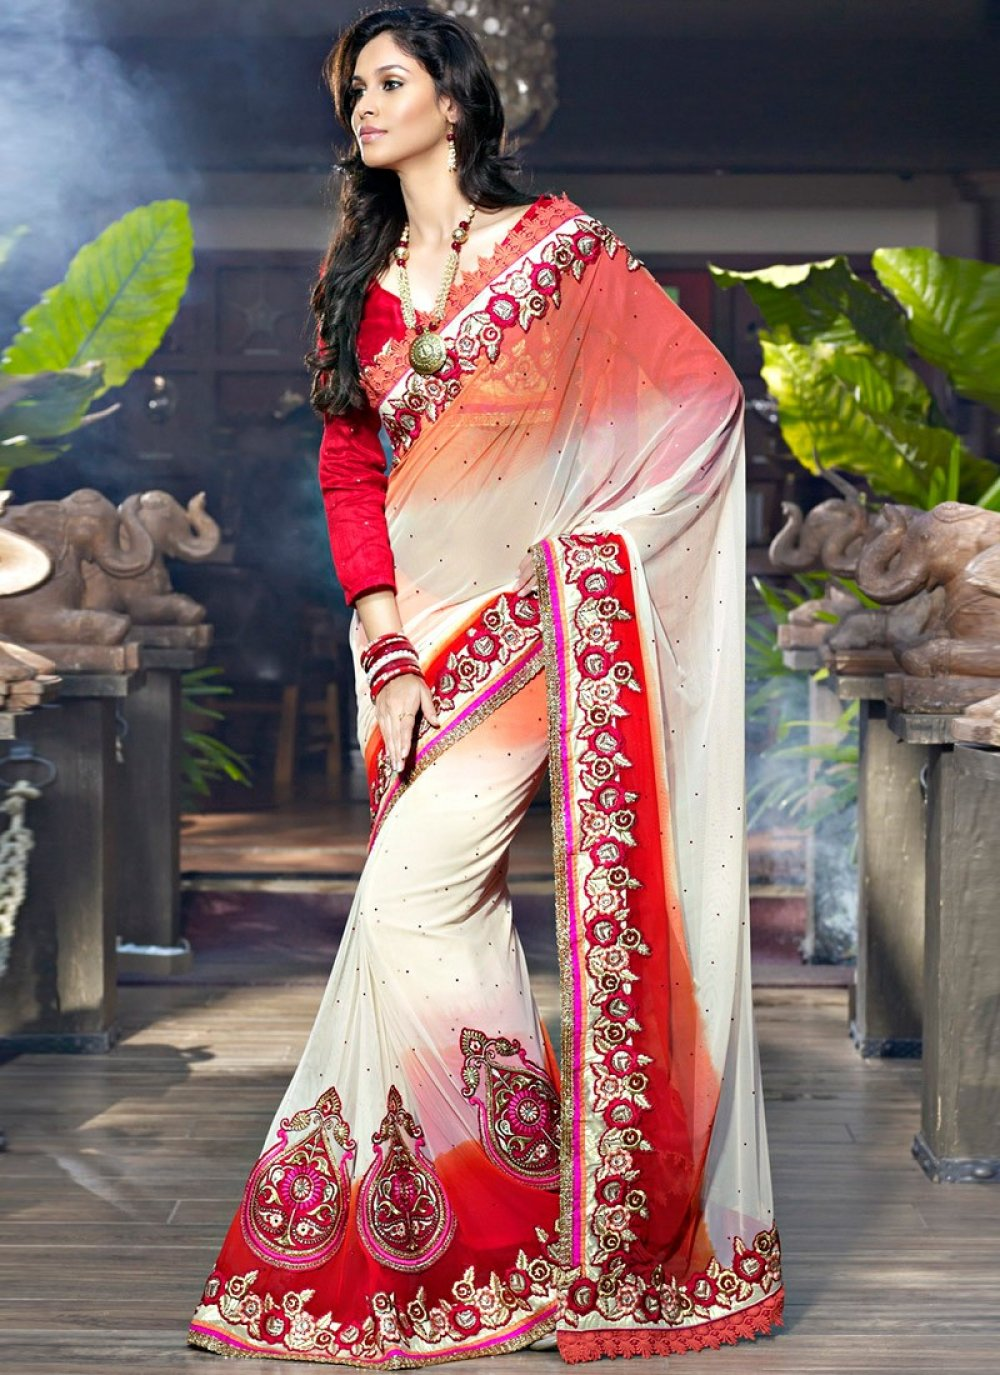 Apricot & Brick Red Embroidered Saree